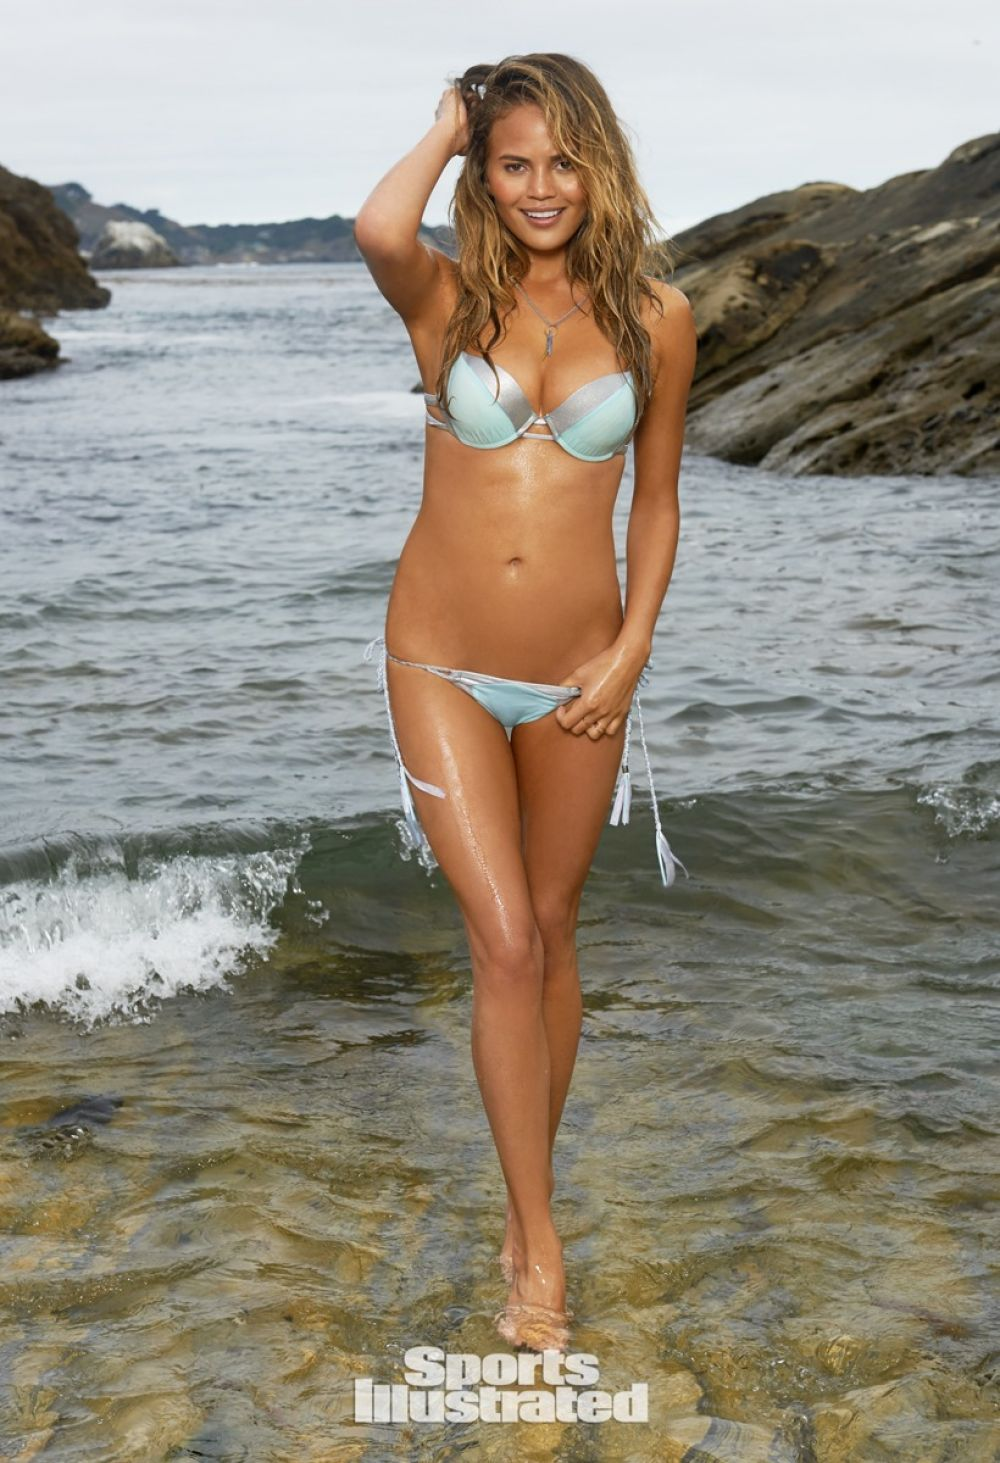 Chrissy Teigen Sports Illustrated Swimsuit - Celebzz - Celebzz